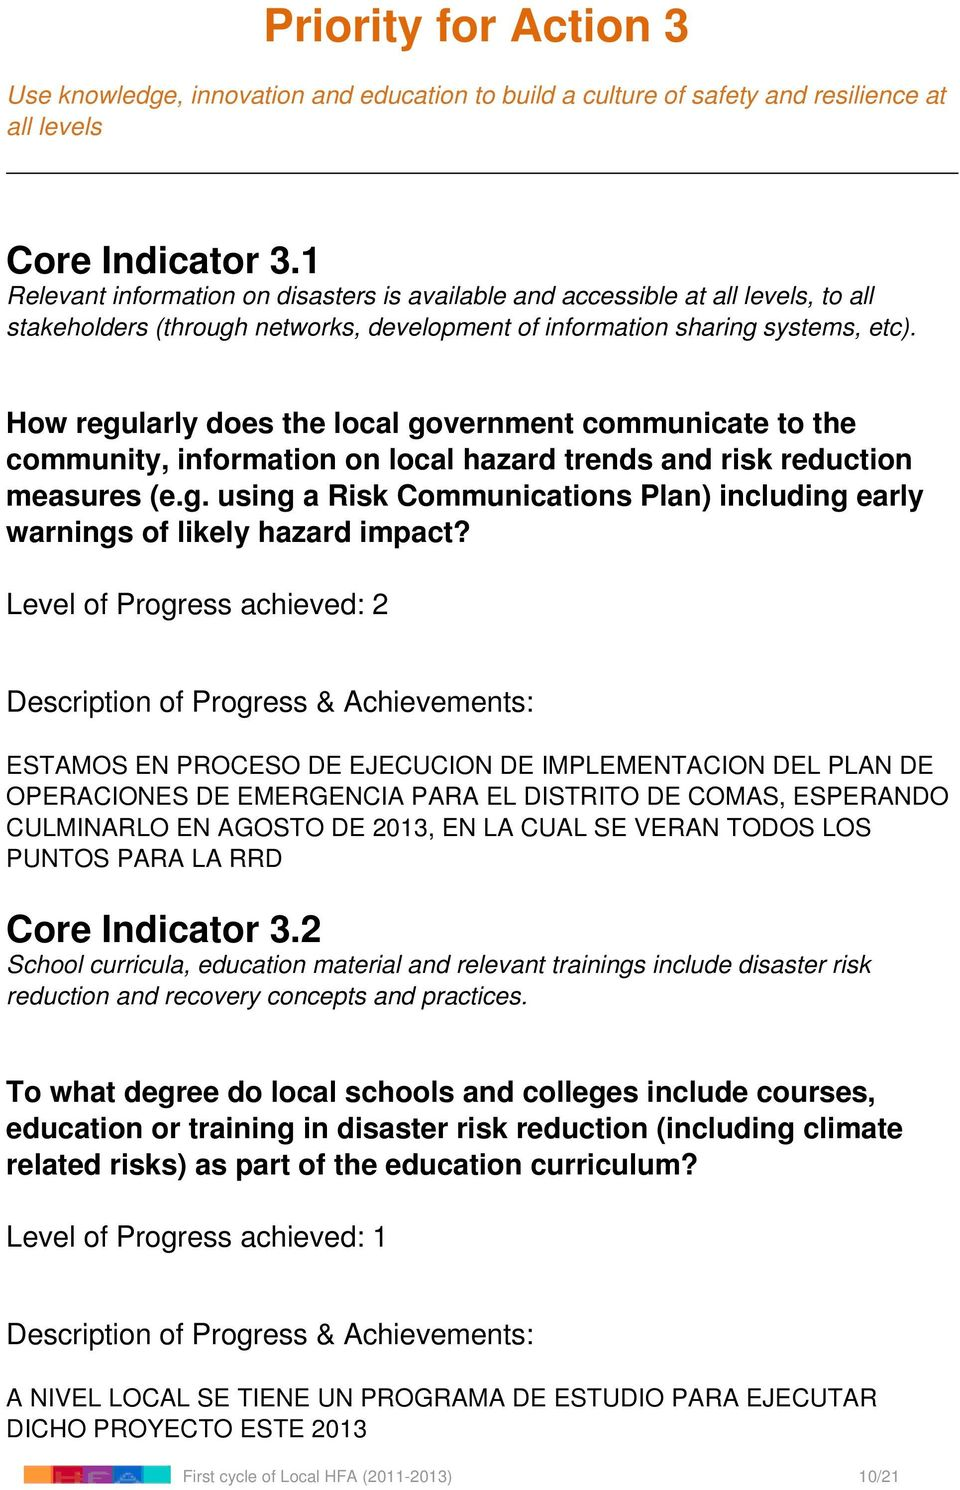 How regularly does the local government communicate to the community, information on local hazard trends and risk reduction measures (e.g. using a Risk Communications Plan) including early warnings of likely hazard impact?